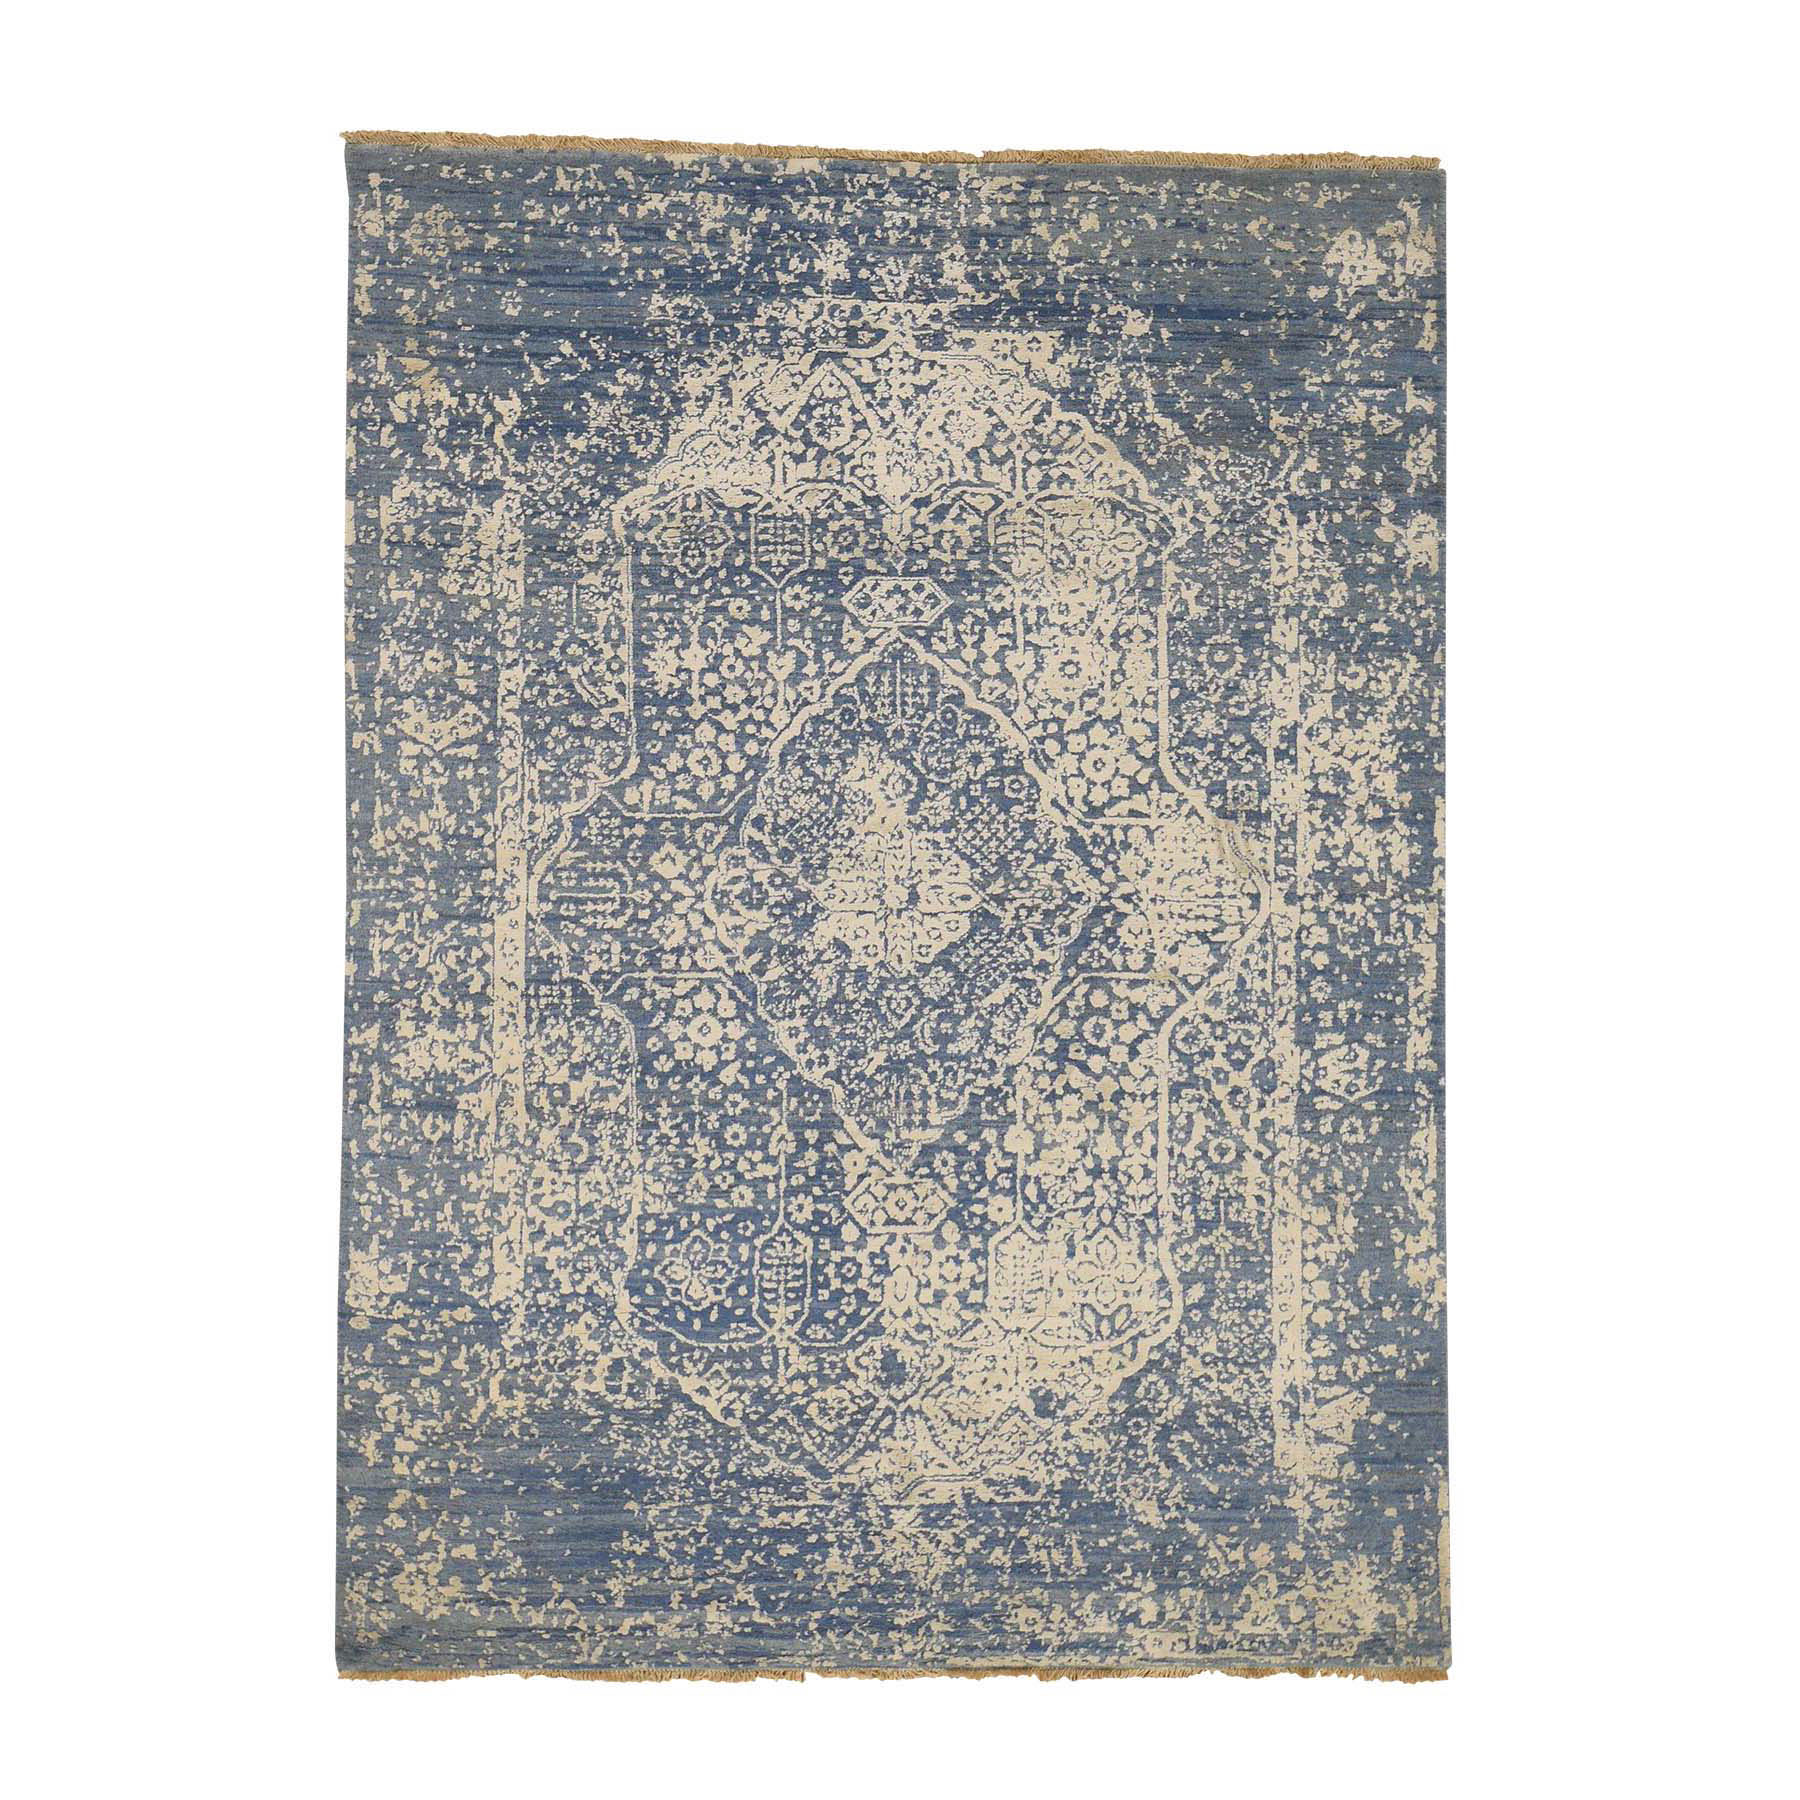 5'1''X7' Denim Blue Wool And Pure Silk Hand-Knotted Broken Persian Design Rug moac8bba